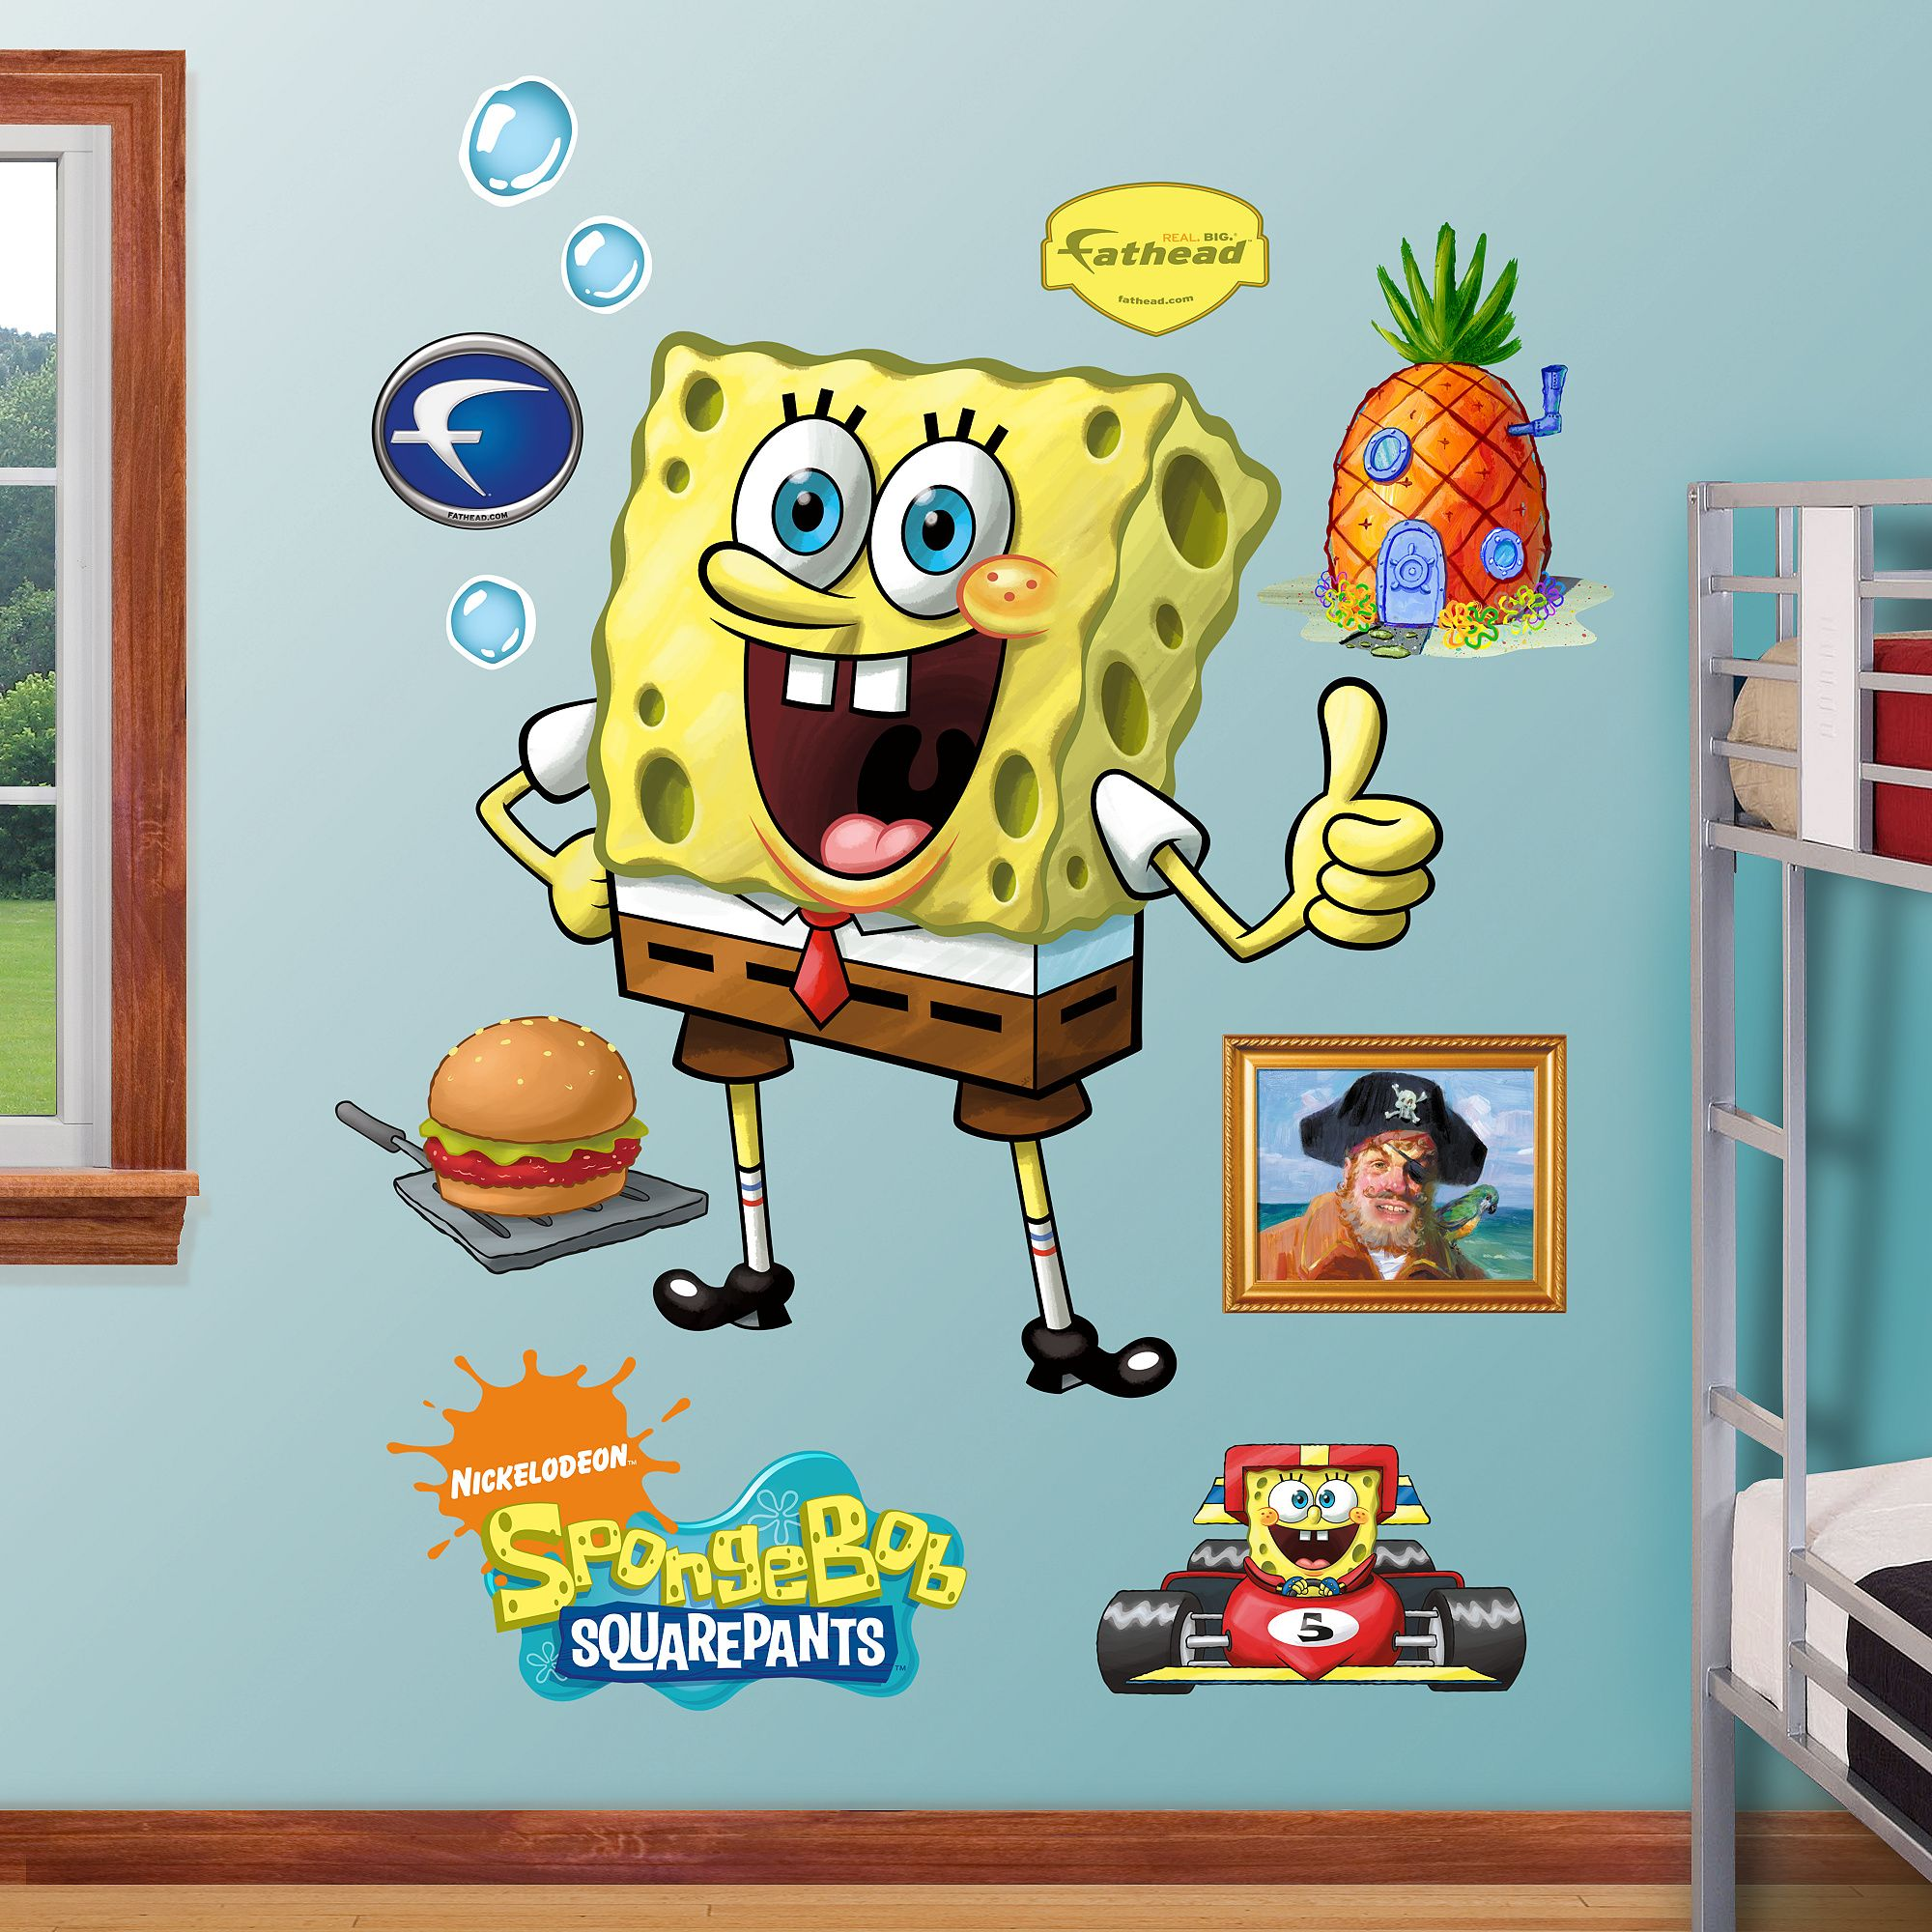 Spongebob Squarepants Life Size Officially Licensed Nickelodeon